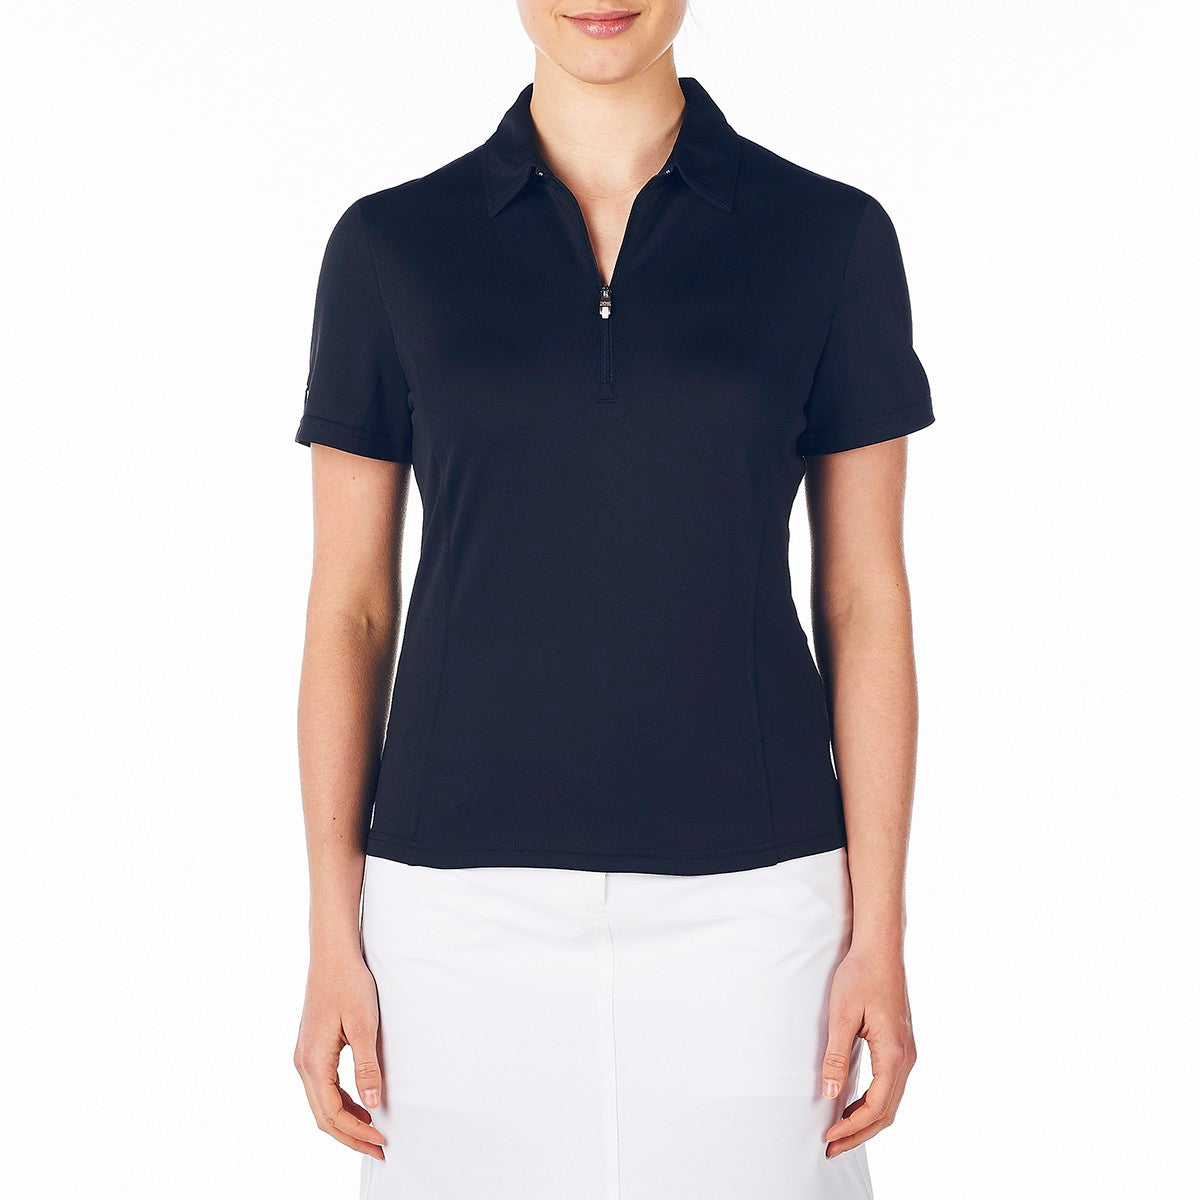 NIVO Short Sleeve Navy Polo 100